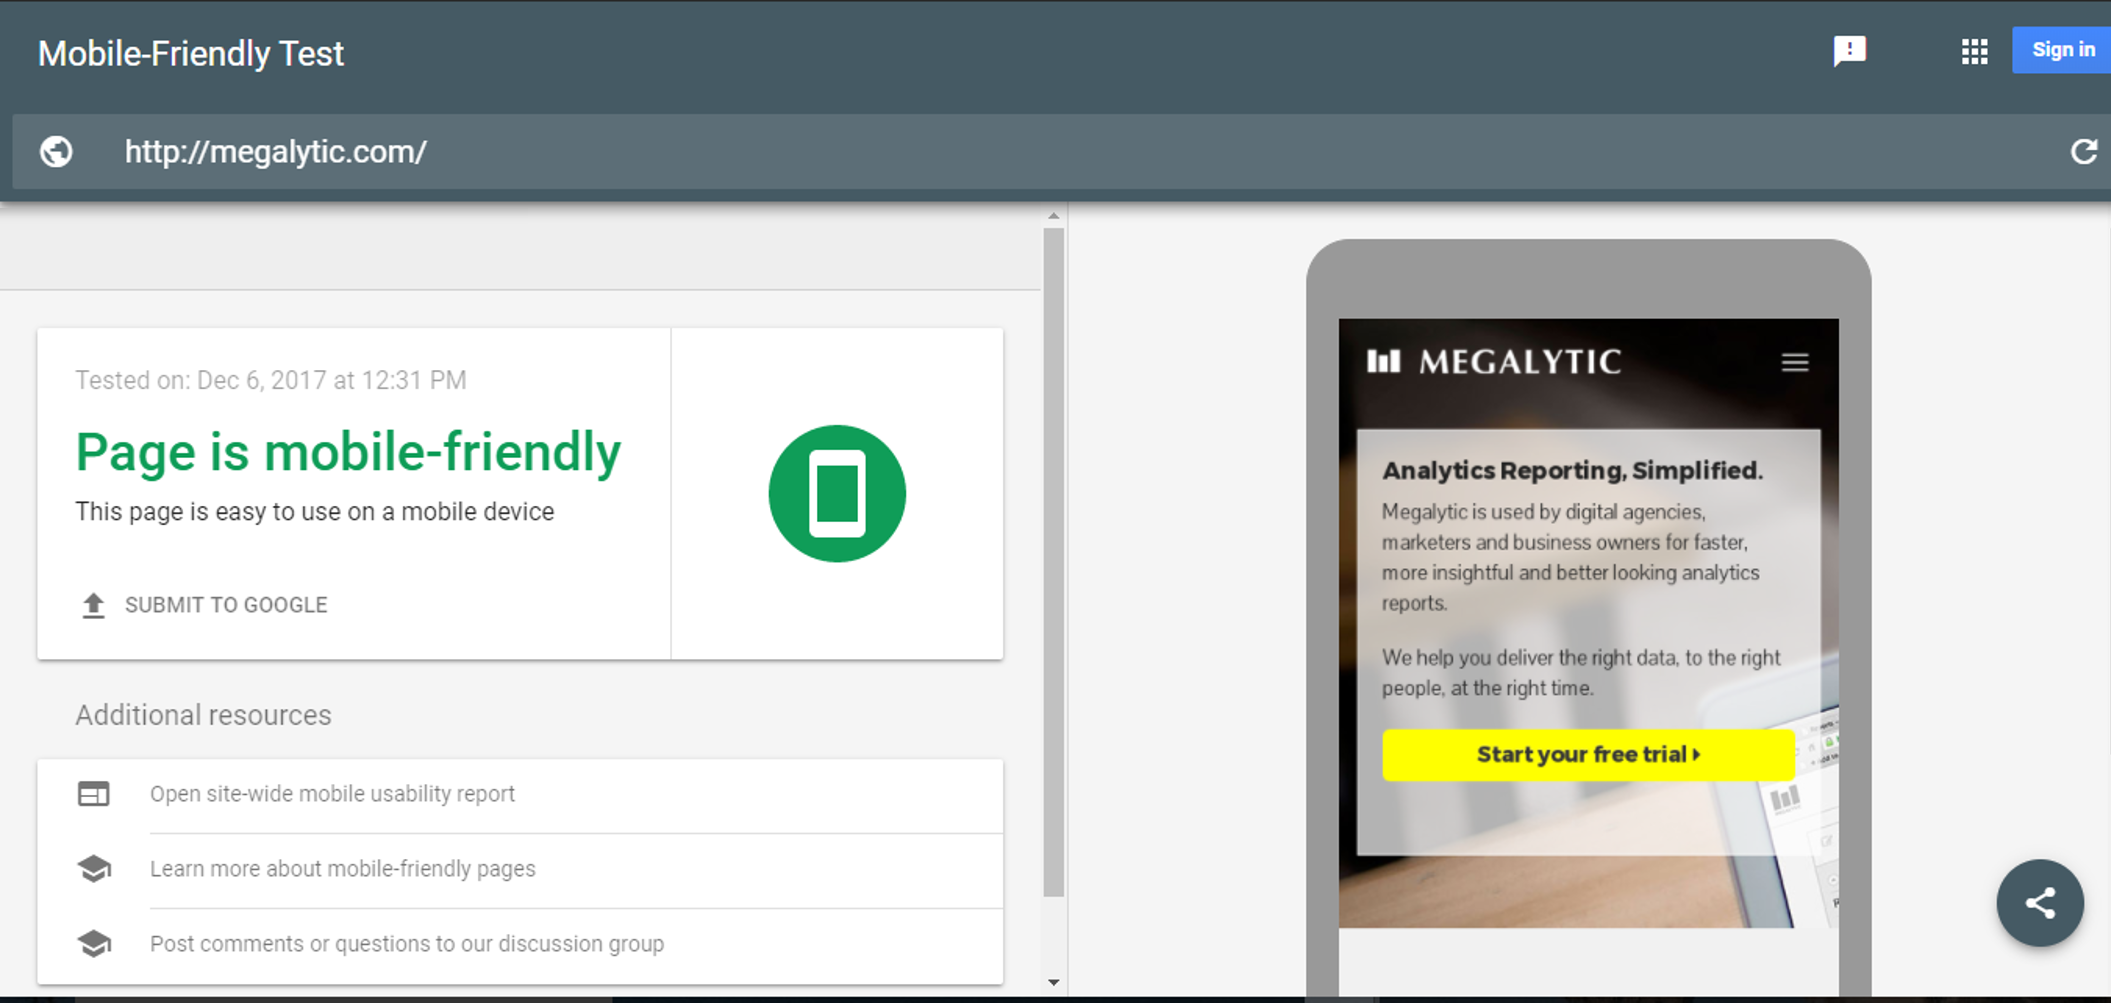 Megalytic is Mobile Friendly